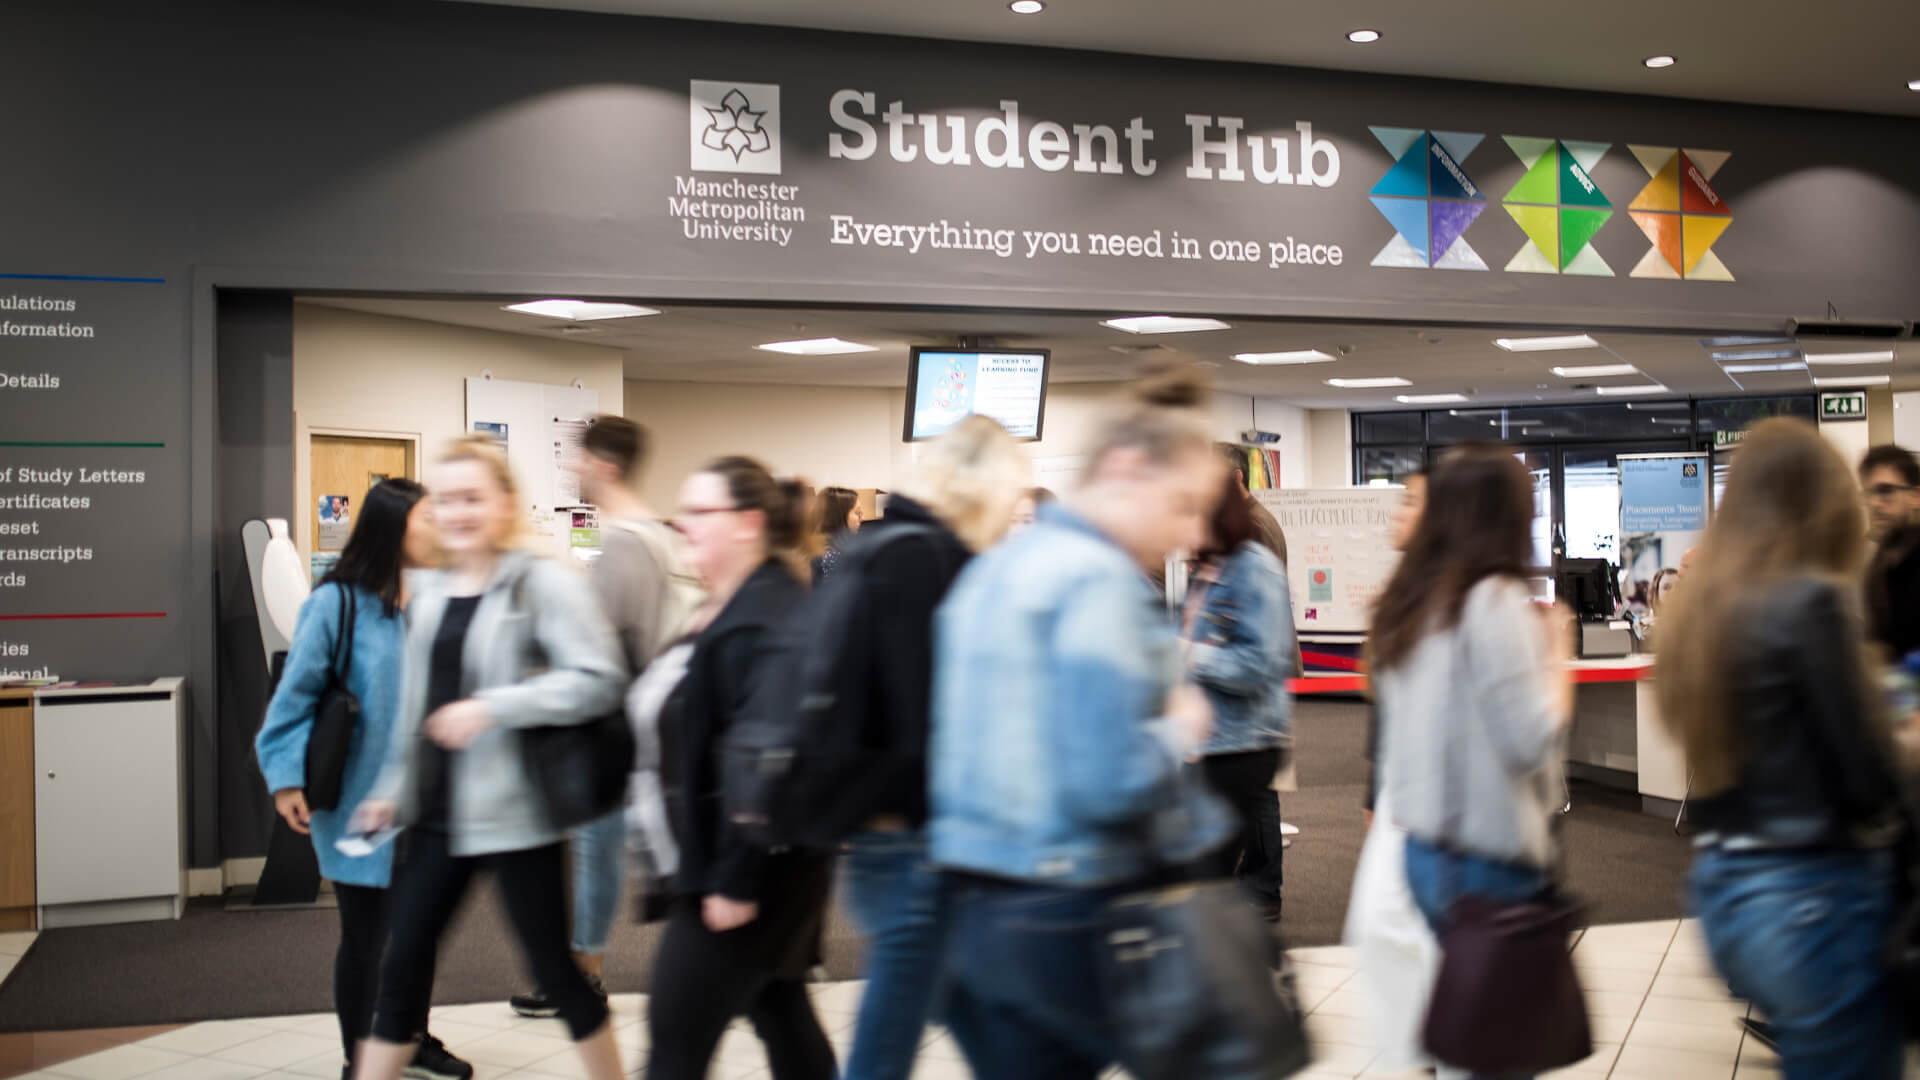 Manchester Metropolitan University's Student Hub offers advice to students on campus